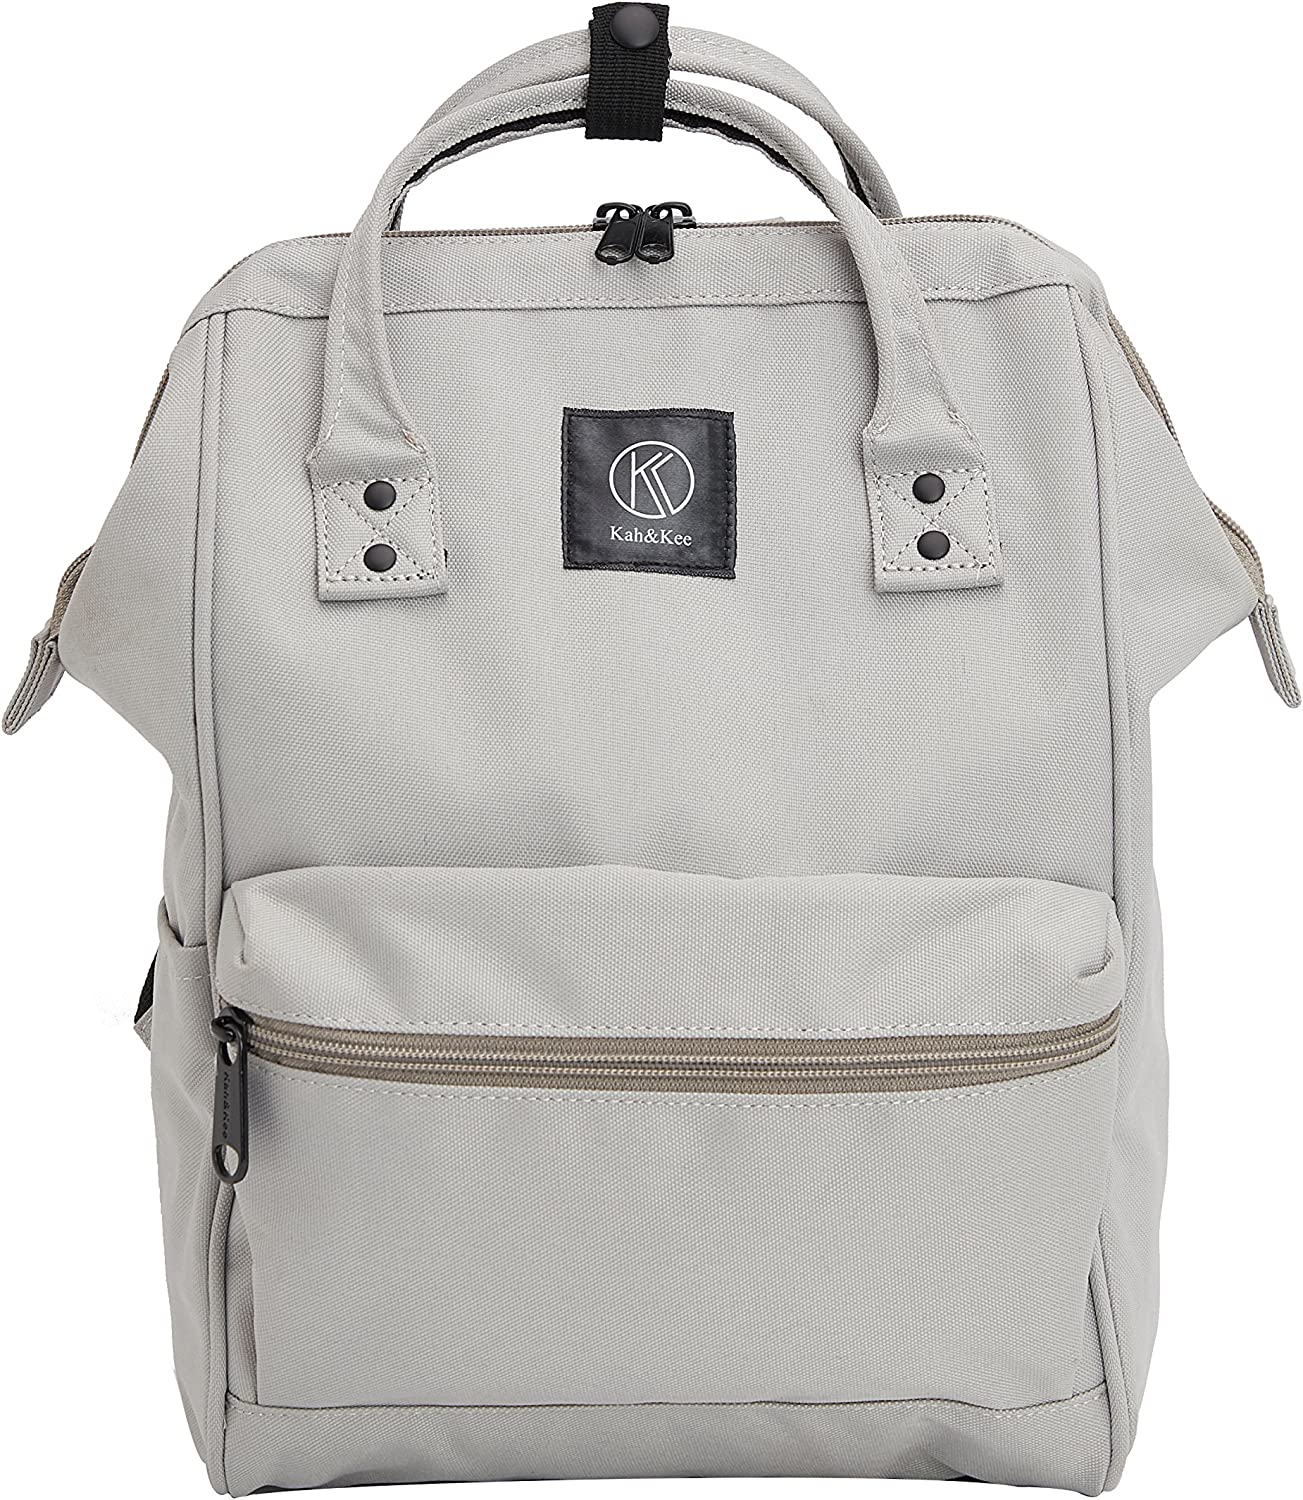 Kah&Kee Polyester Travel Backpack Functional Anti-theft School Laptop for Women Men (Light Gray, Small)